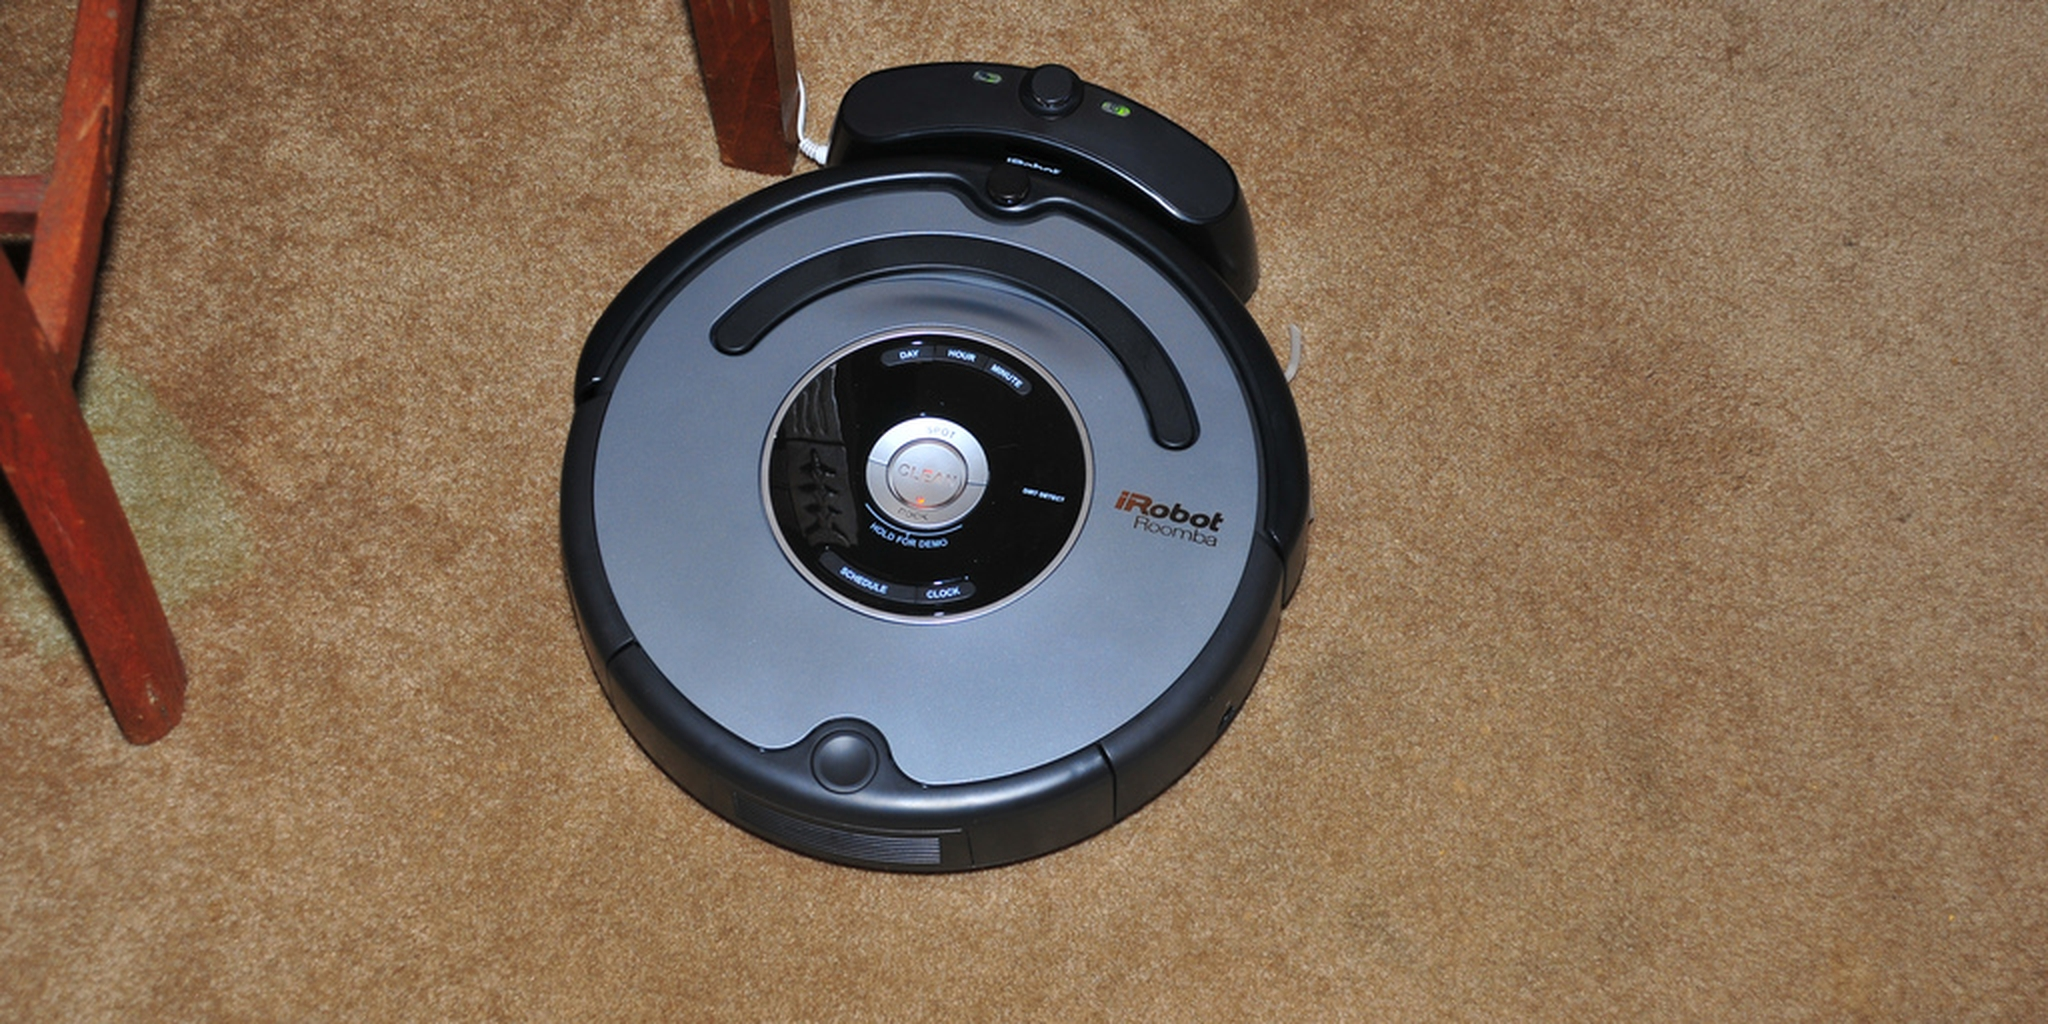 All sizes | Roomba | Flickr - Photo Sharing!